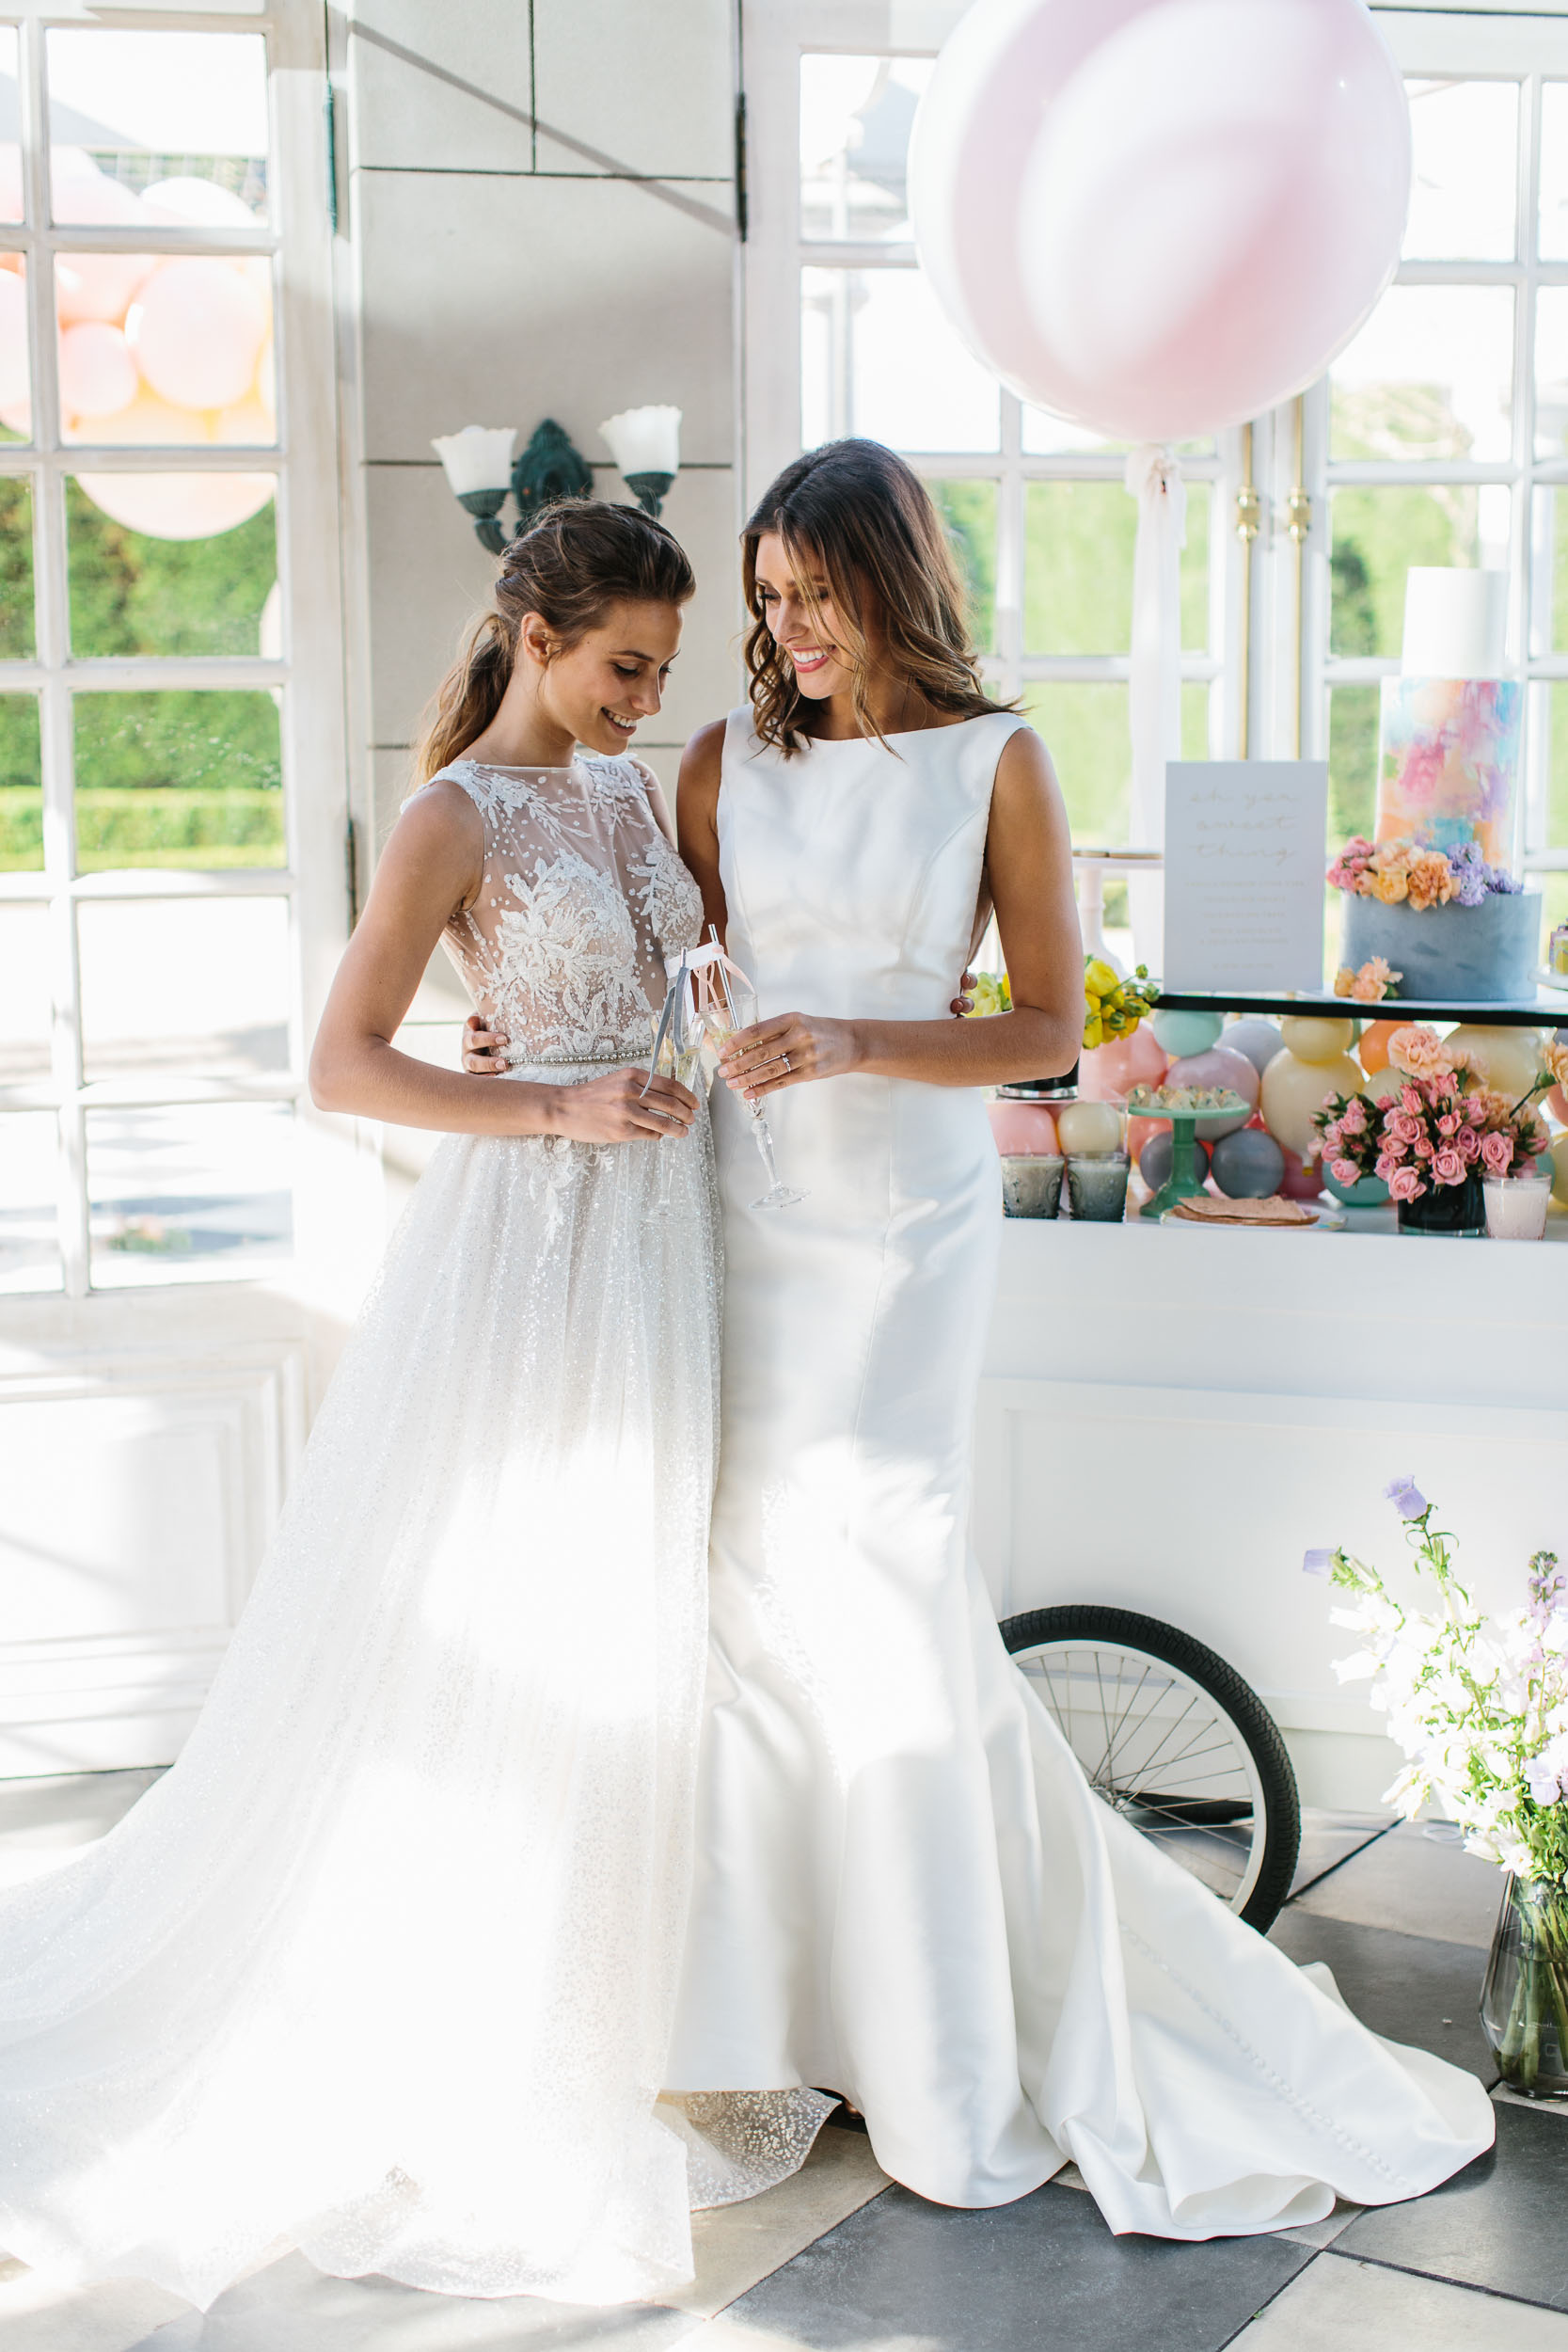 Luxe Wedding Drink Cart | Wedding Photography by Kas Richards